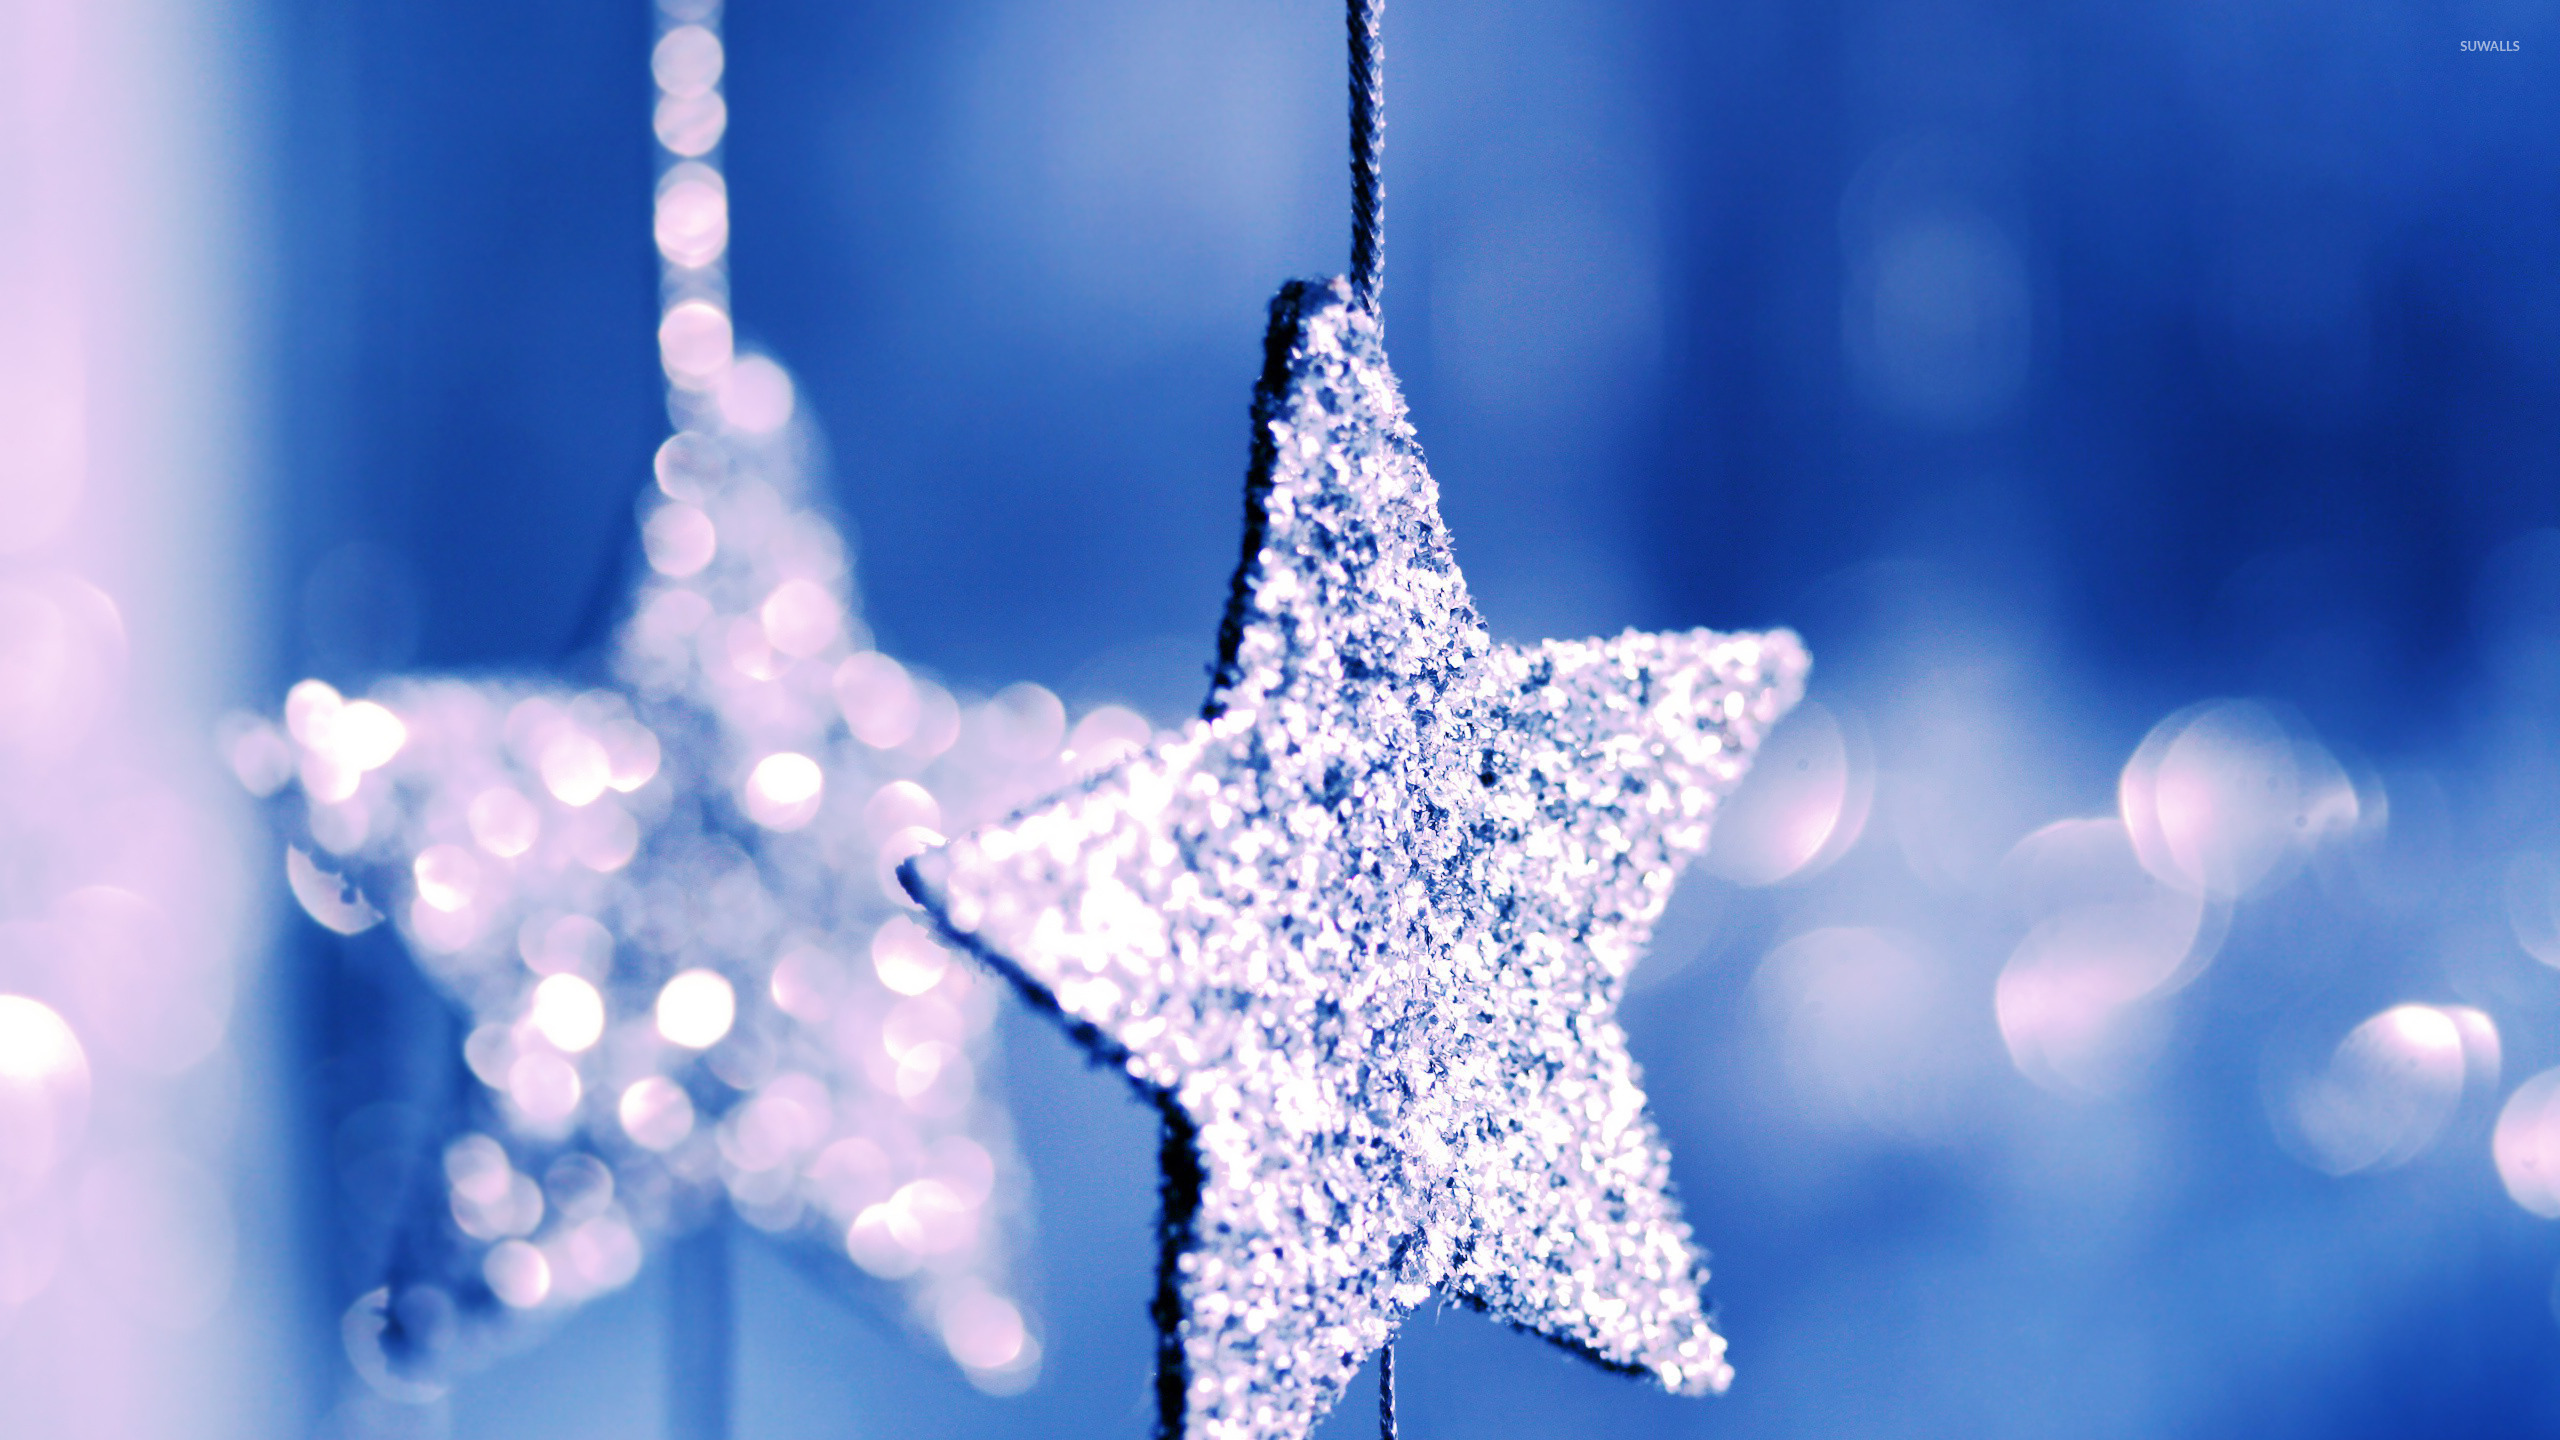 Sparkling stars [2] wallpaper   Photography wallpapers 2560x1440